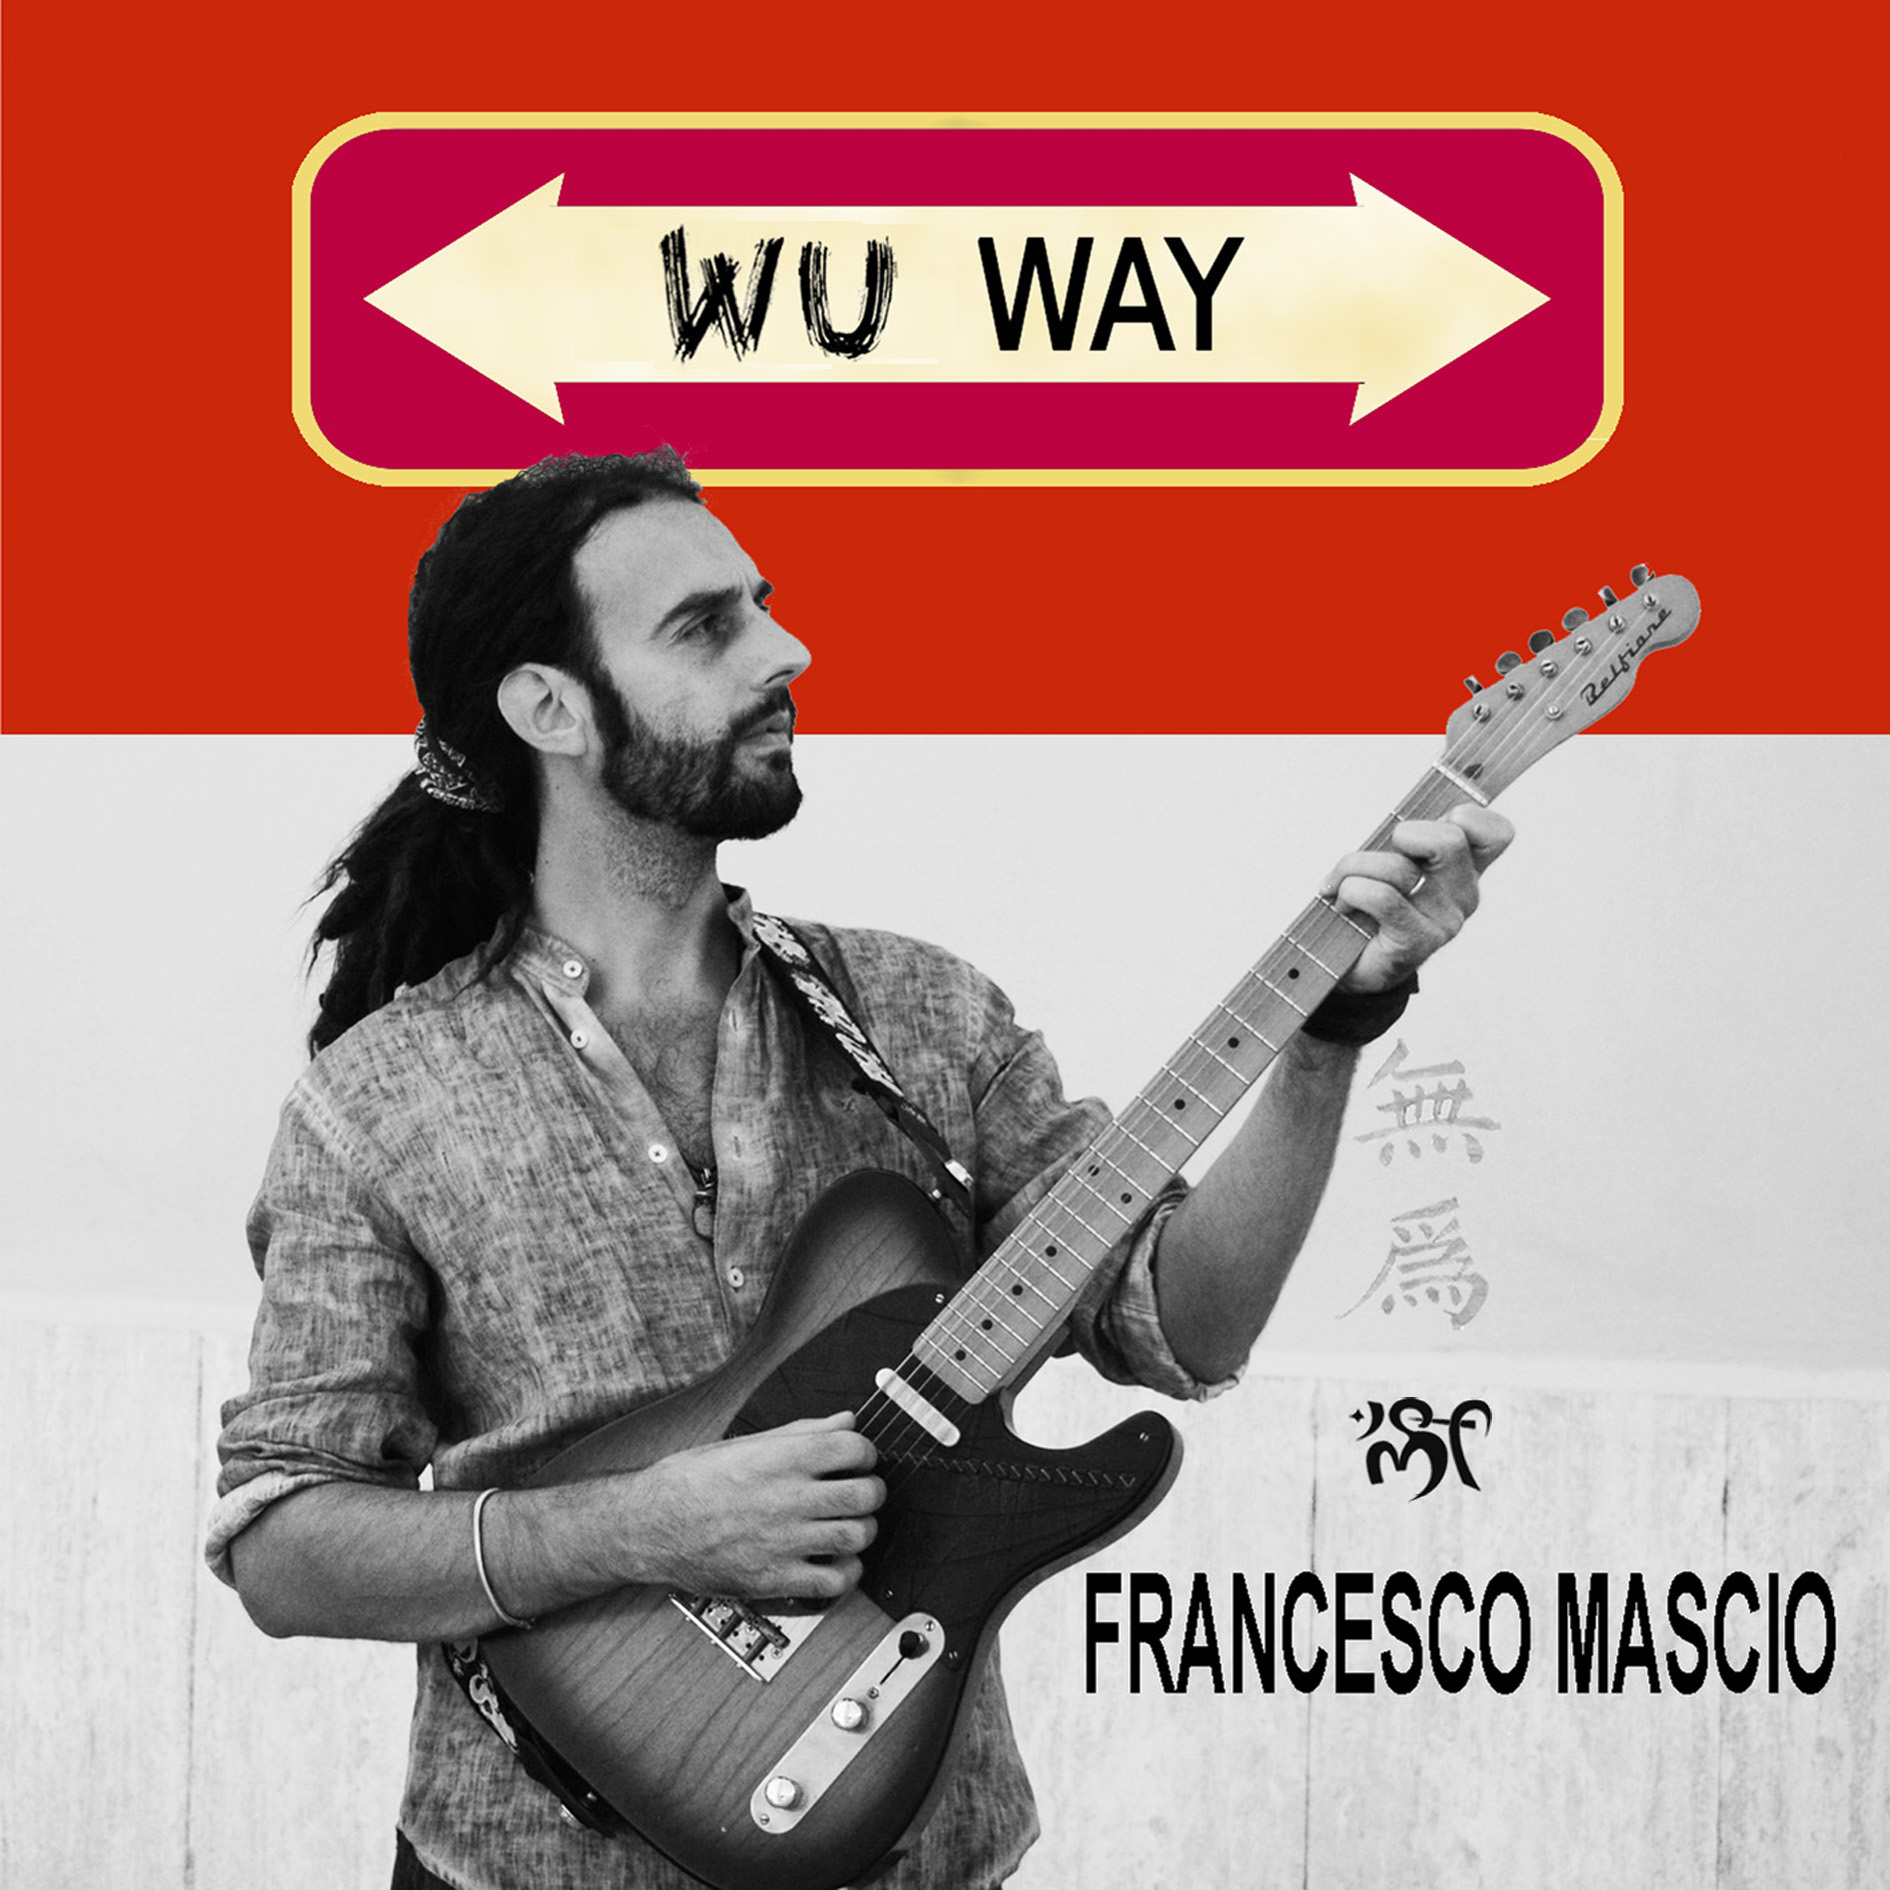 WU WAY Tour feat. Tullio Ricci e Massimiliano Salina